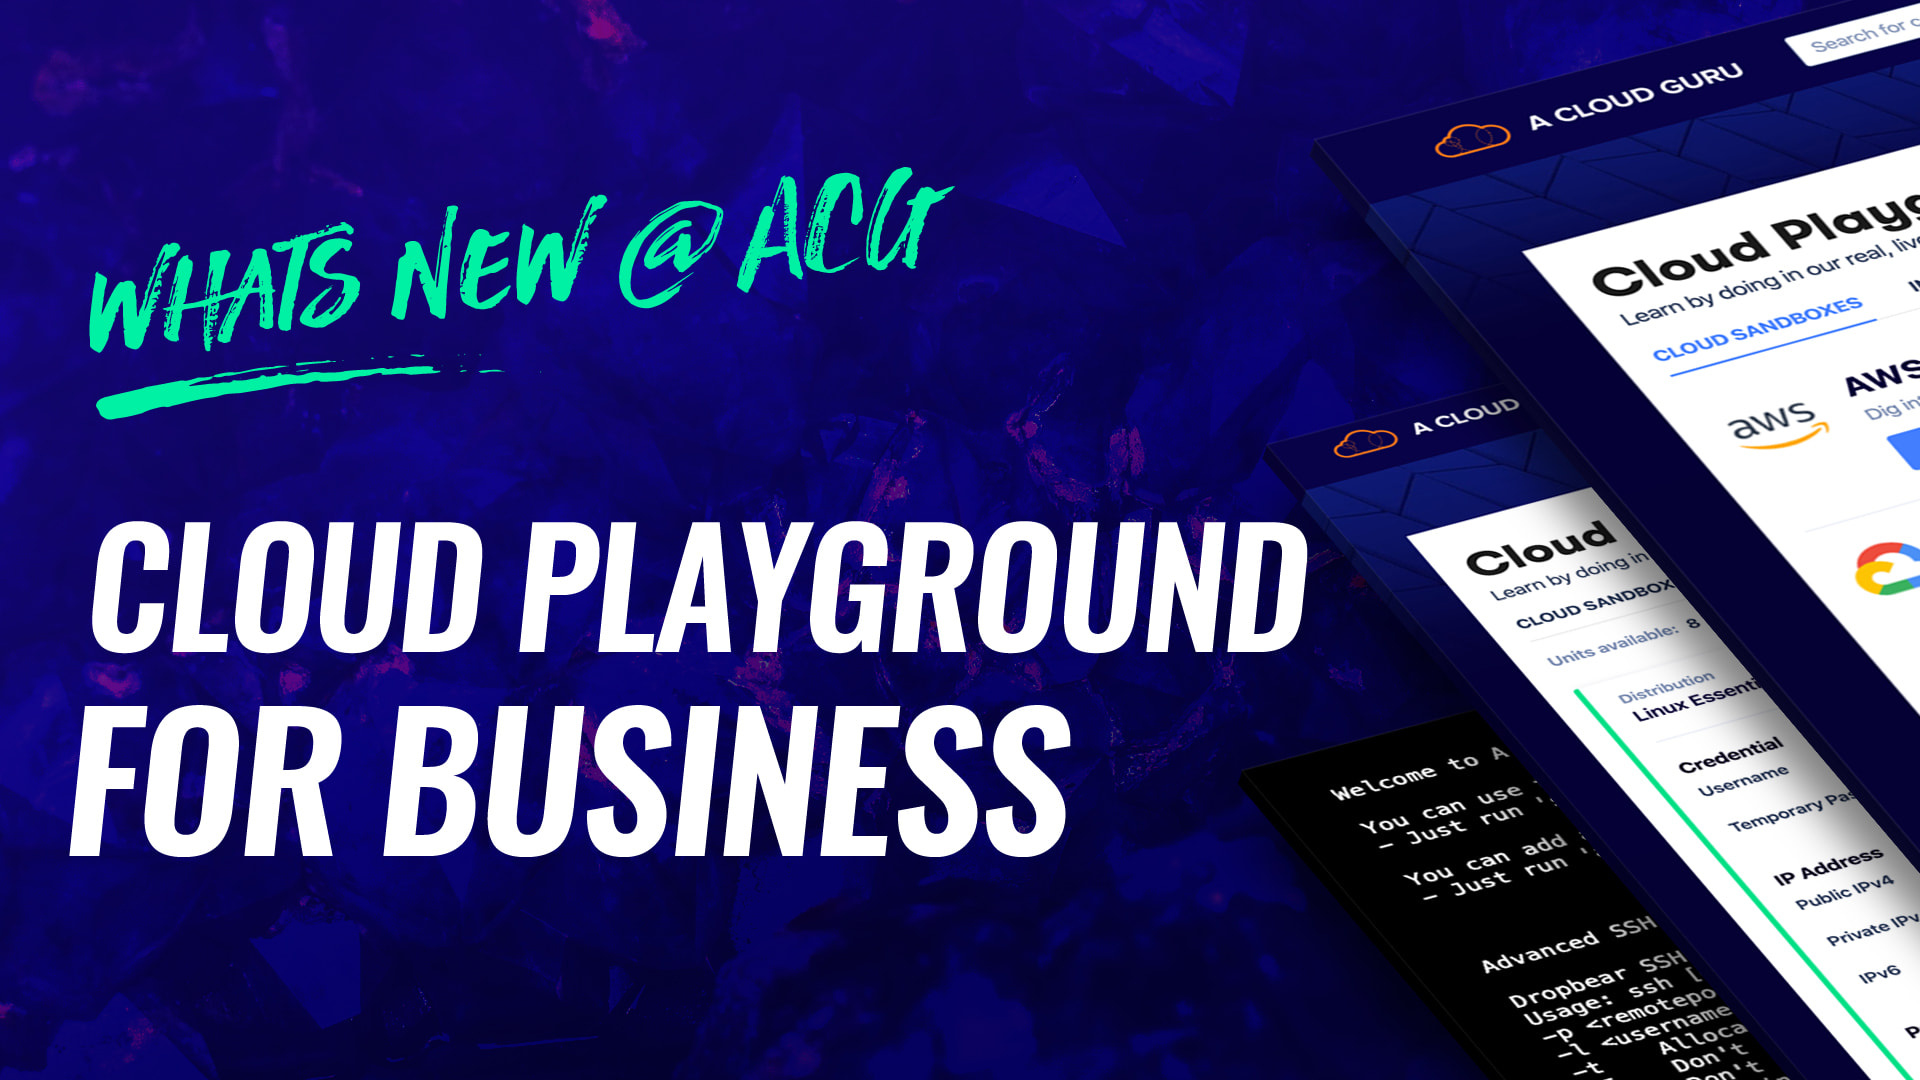 Whats new @ ACG - Cloud Playground for Business